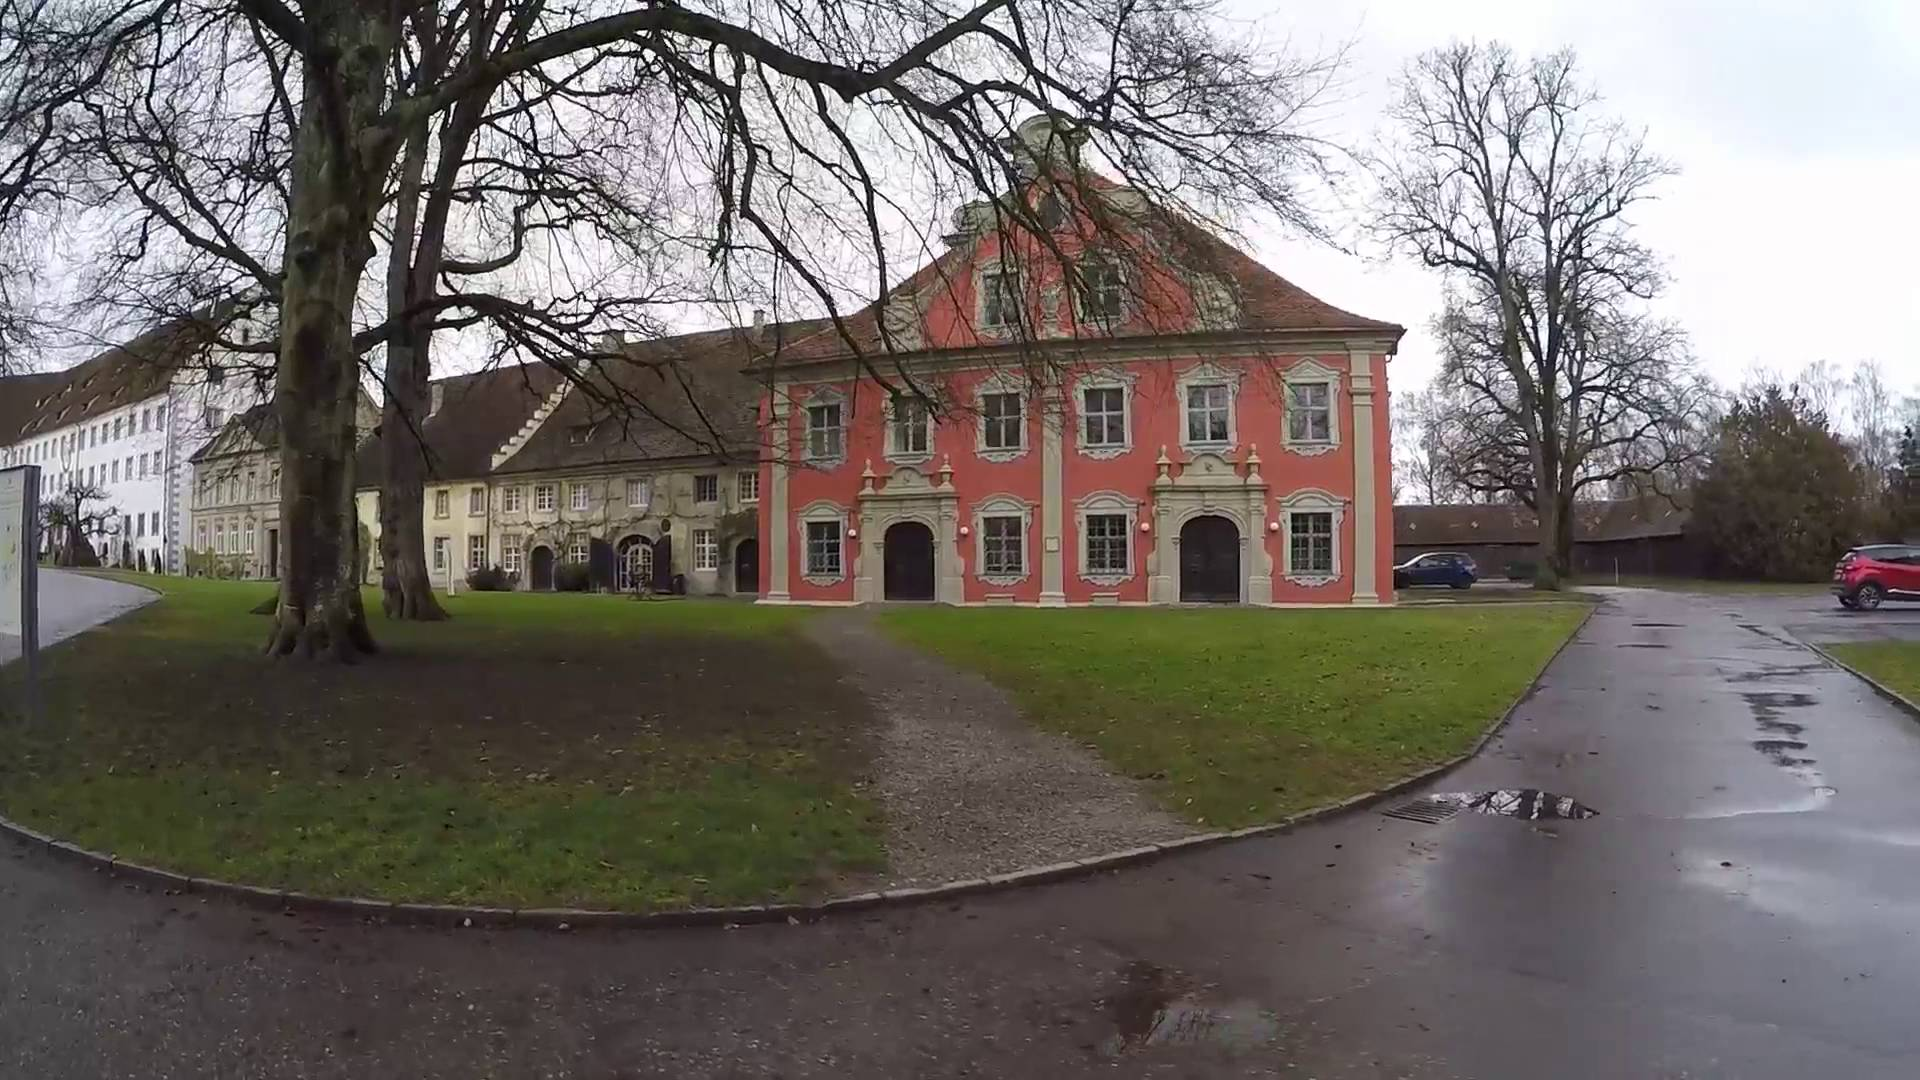 Schloss Salem The Bodensee, STREET VIEW: Schloß Salem am Bodensee in GERMANY - YouTube